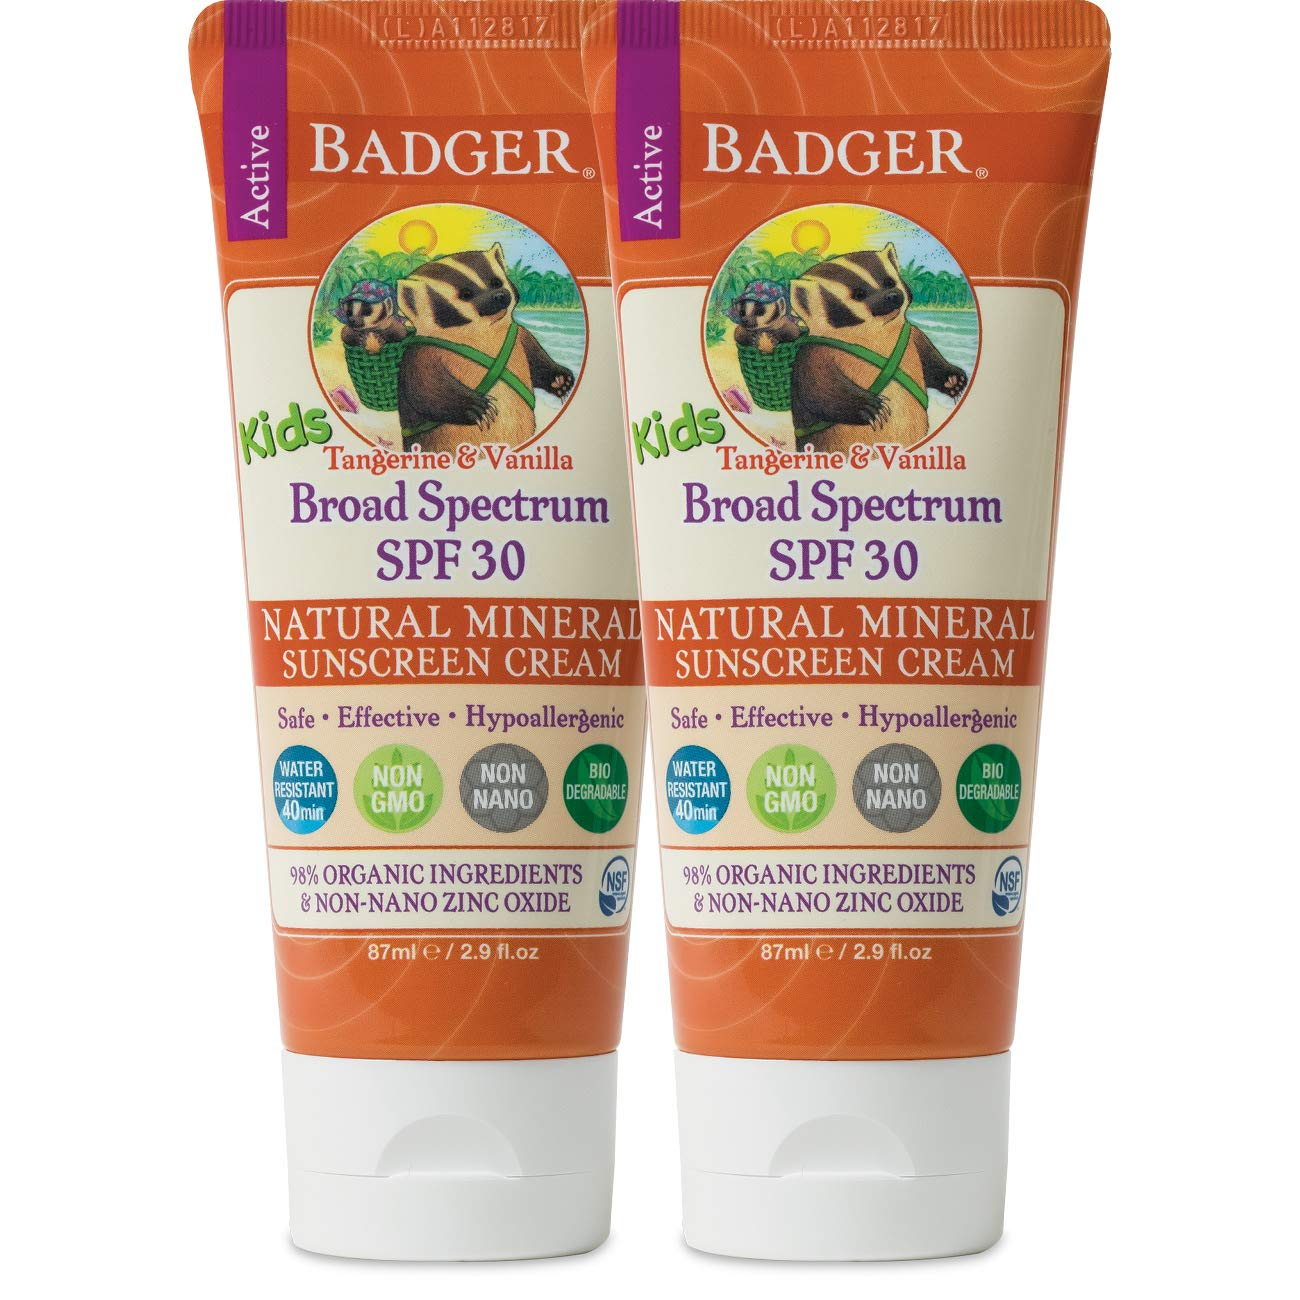 Badger - SPF 30 Kids Sunscreen Cream with Zinc Oxide for Face and Body, Broad Spectrum & Water Resistant Reef Safe Sunscreen, Natural Mineral Sunscreen with Organic Ingredients 2.9 fl oz (2 pack)